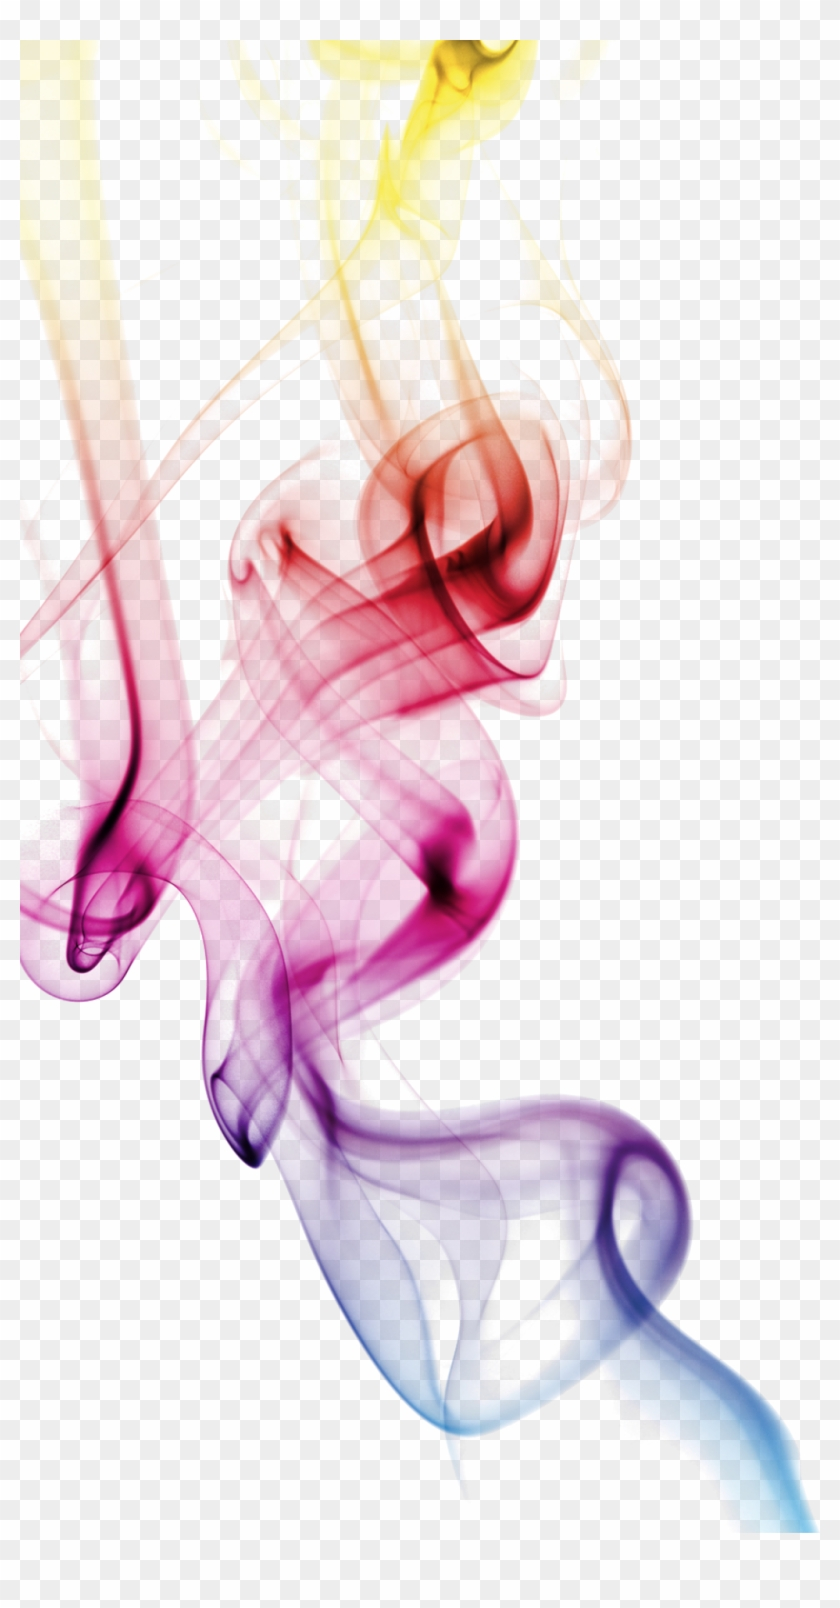 #smoke #rainbow #effect #ftestickers #stickers #autocollants - Transparent Png Coloured Smoke Clipart #2469108